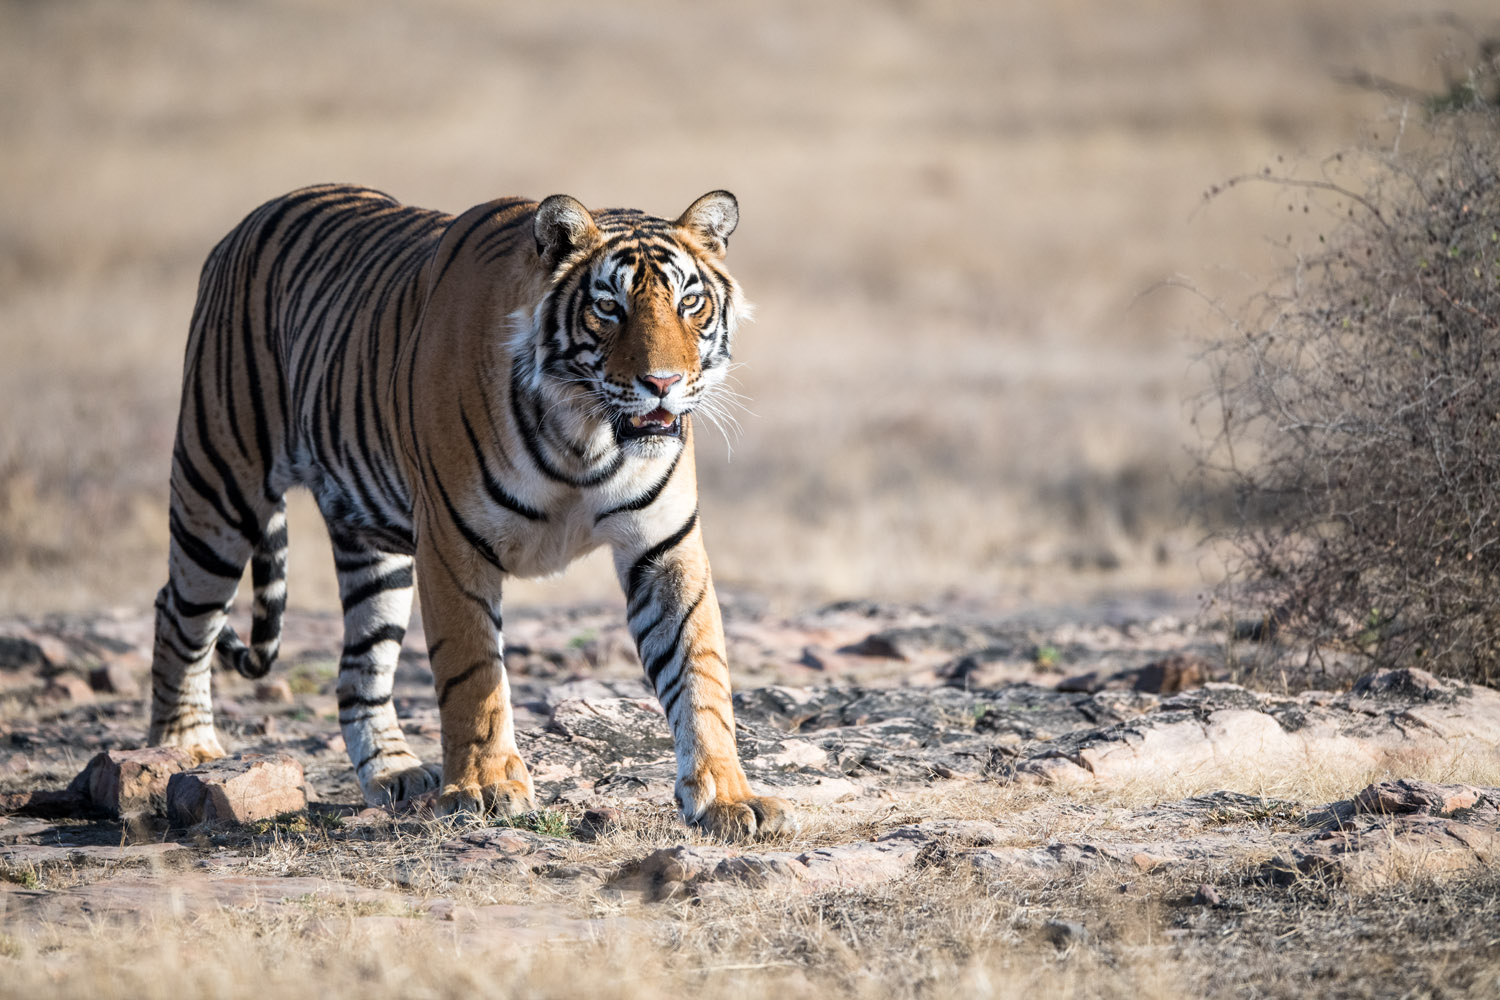 Bengal tiger walking on rocky terrain, Ranthambhore National Park, Rajasthan, India